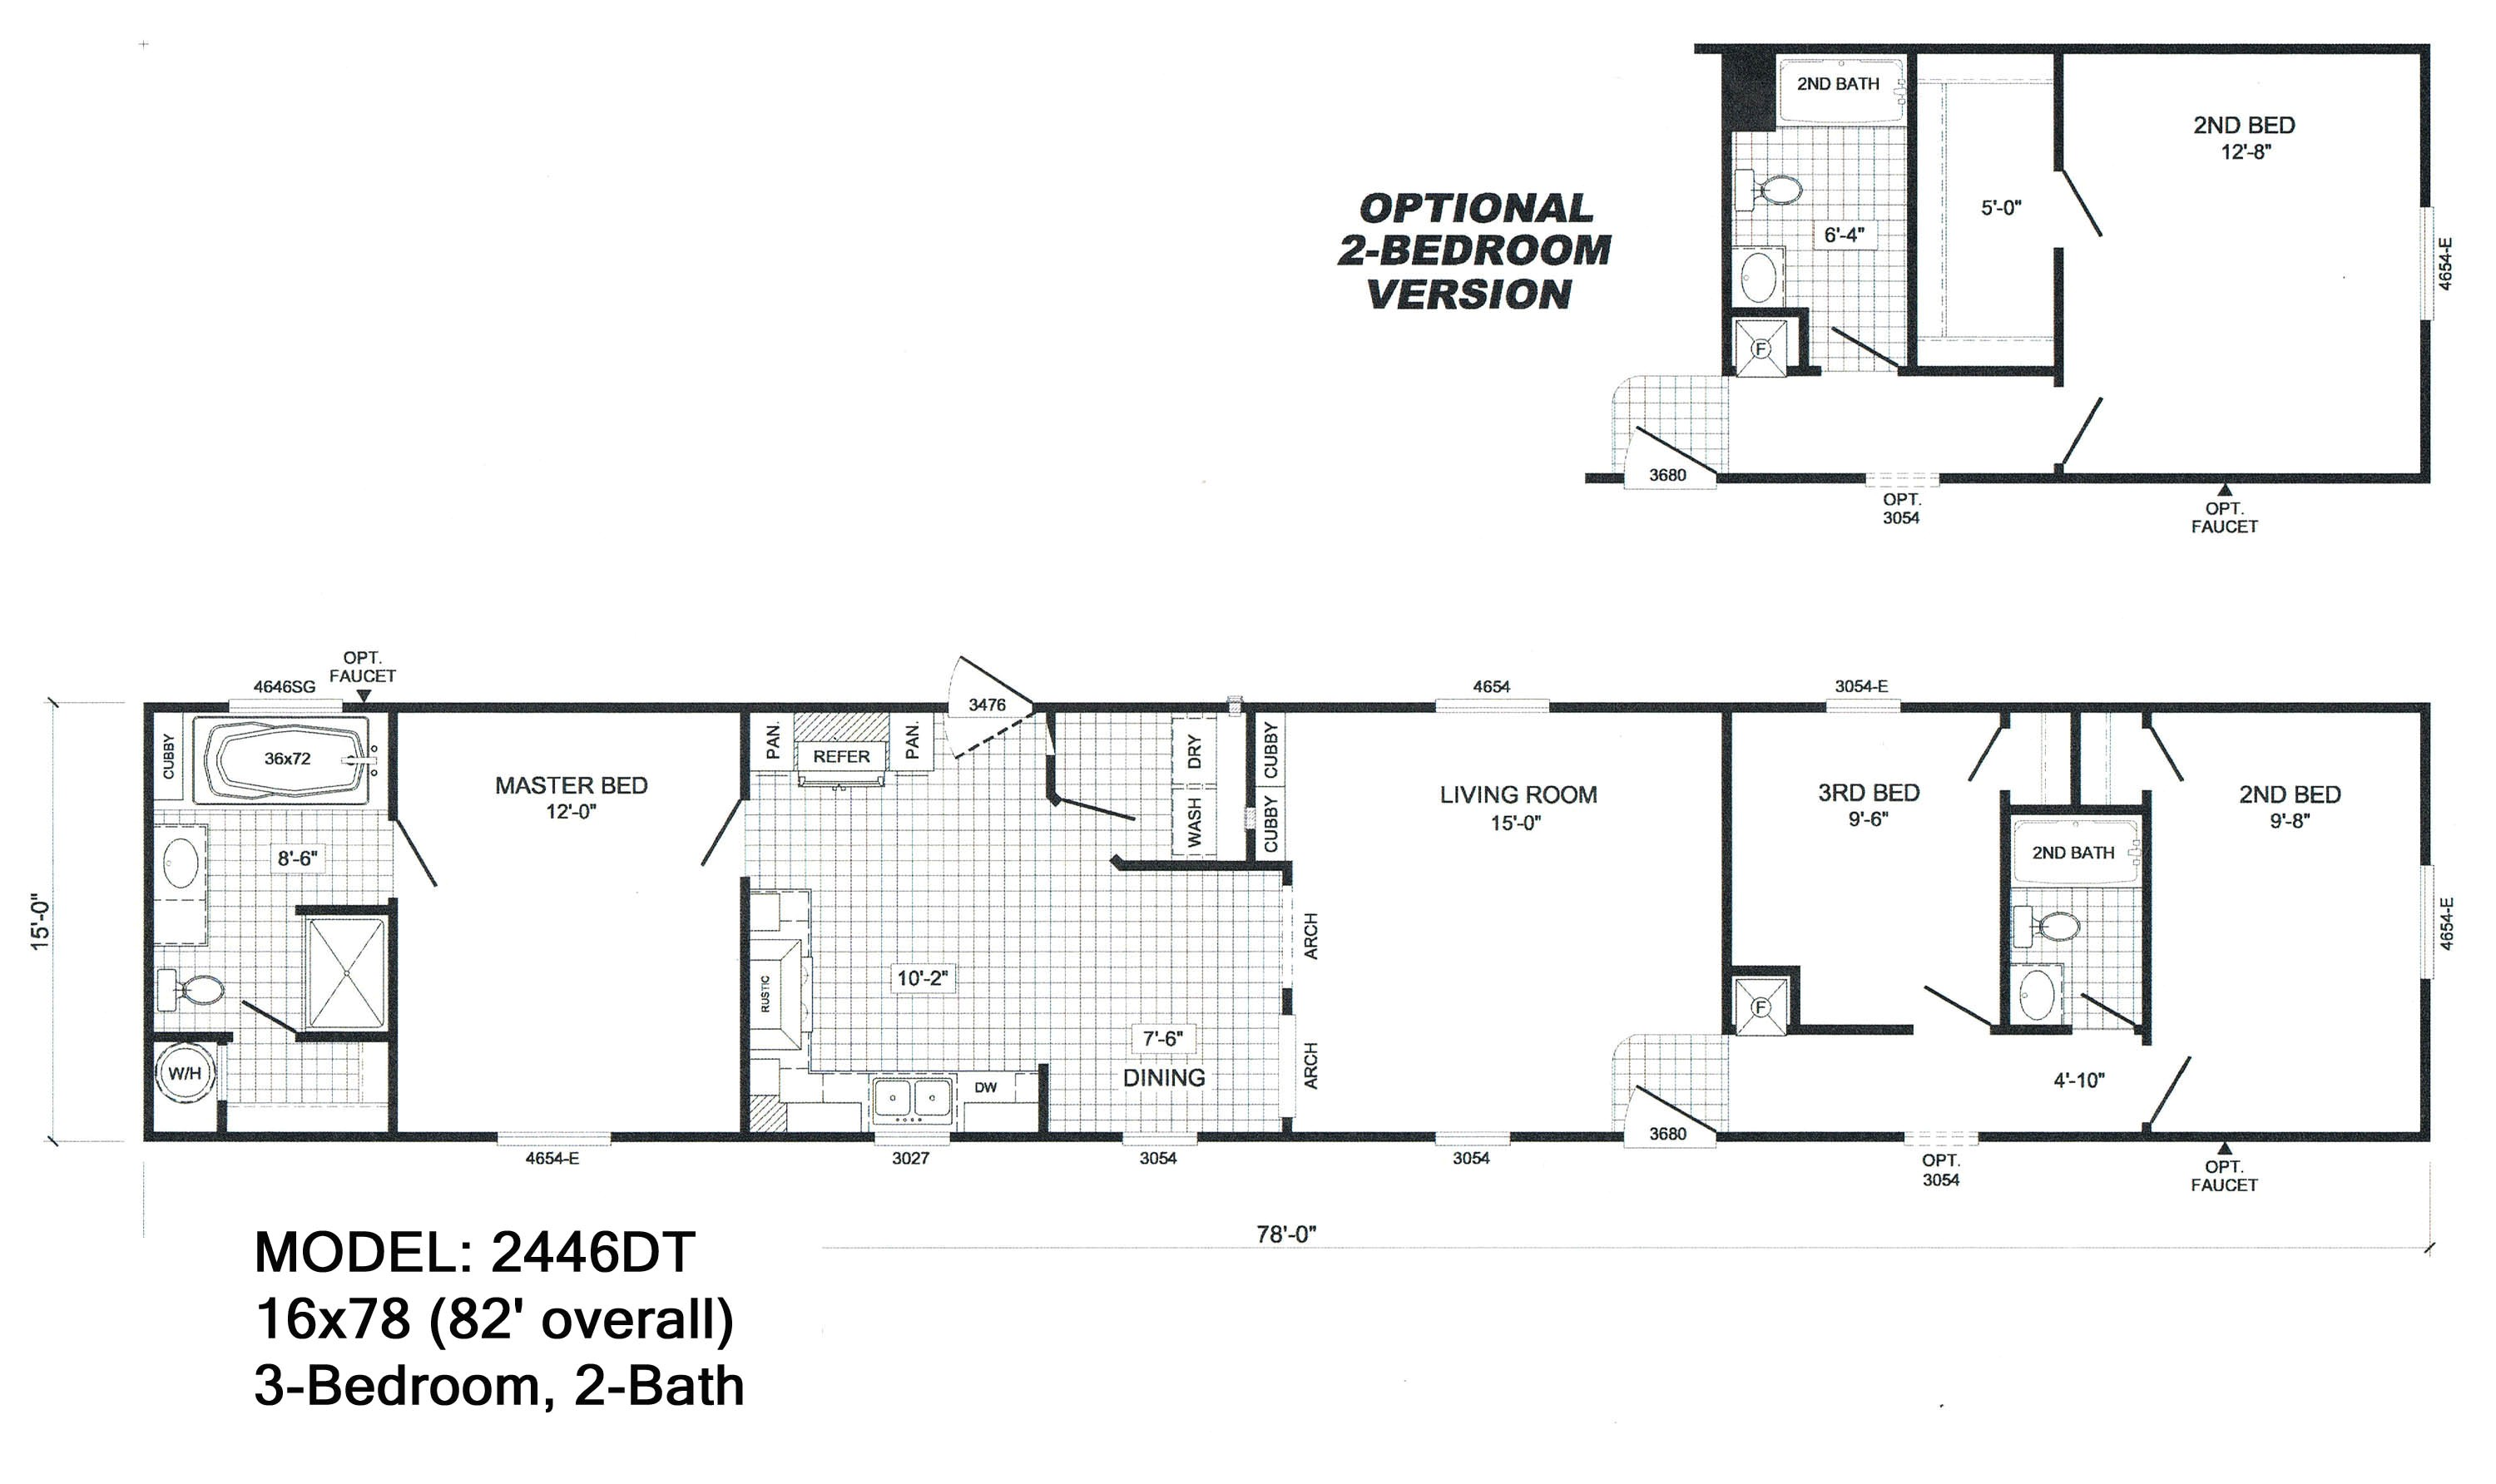 3 bedroom single wide mobile home floor plans inspirations with floorplans mccants images